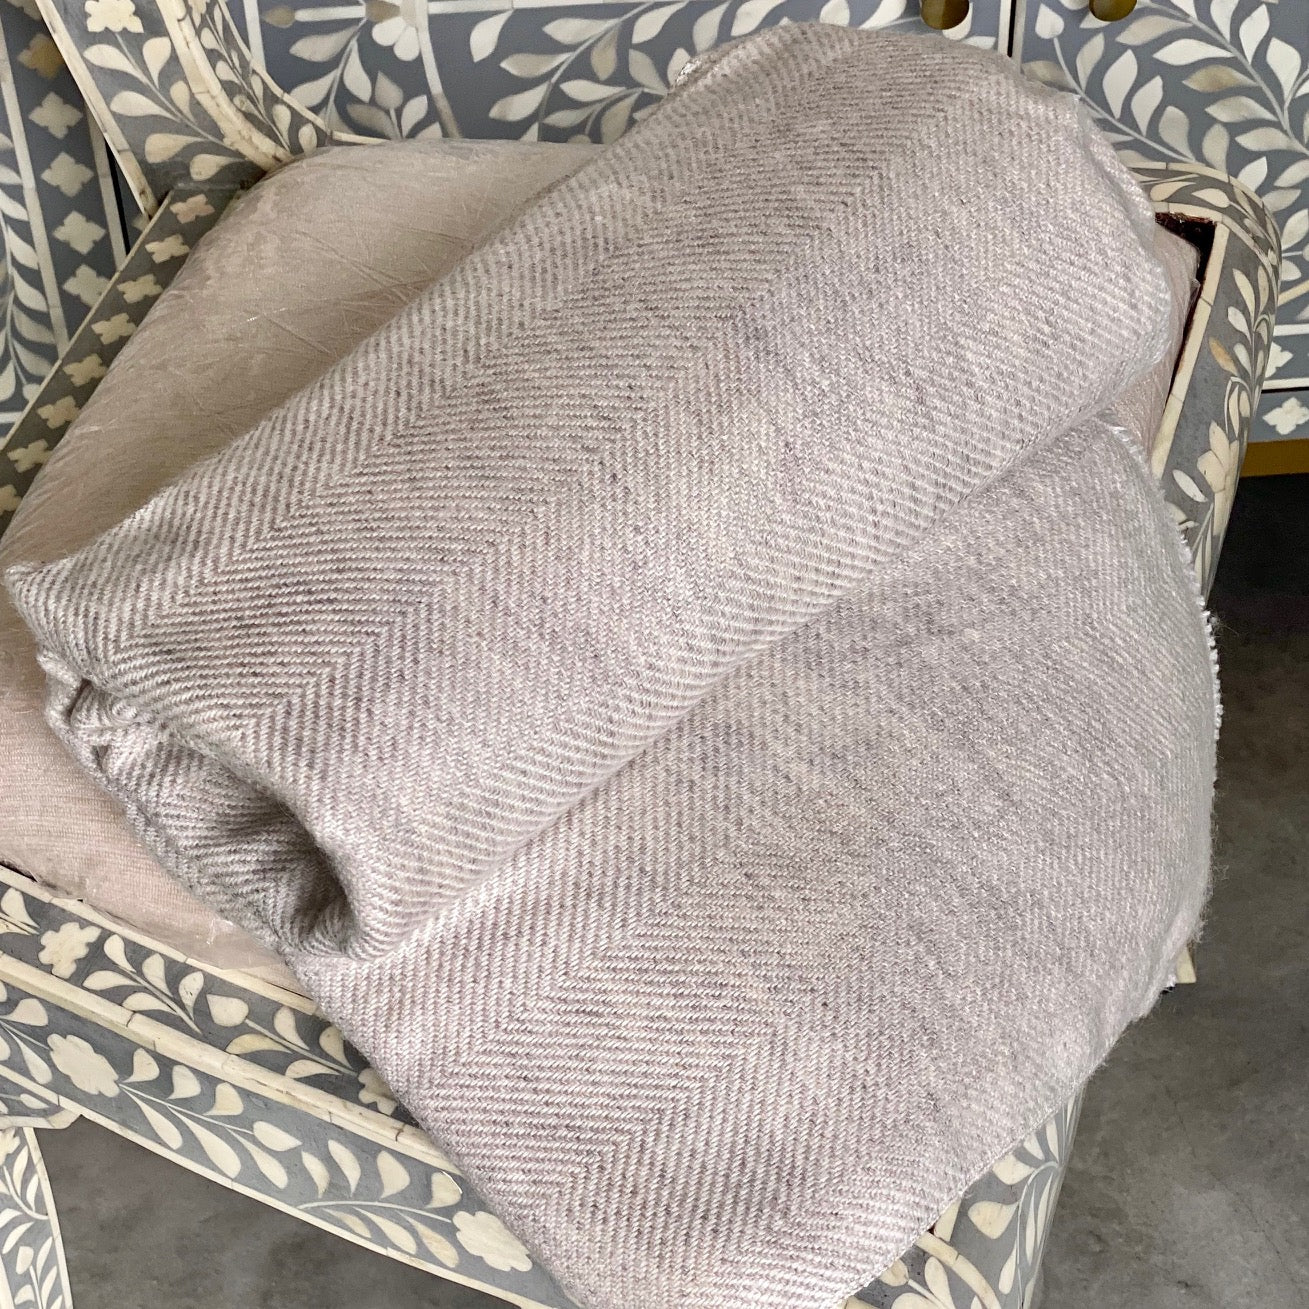 Cashmere Throw - Tan Thin Zig Zag